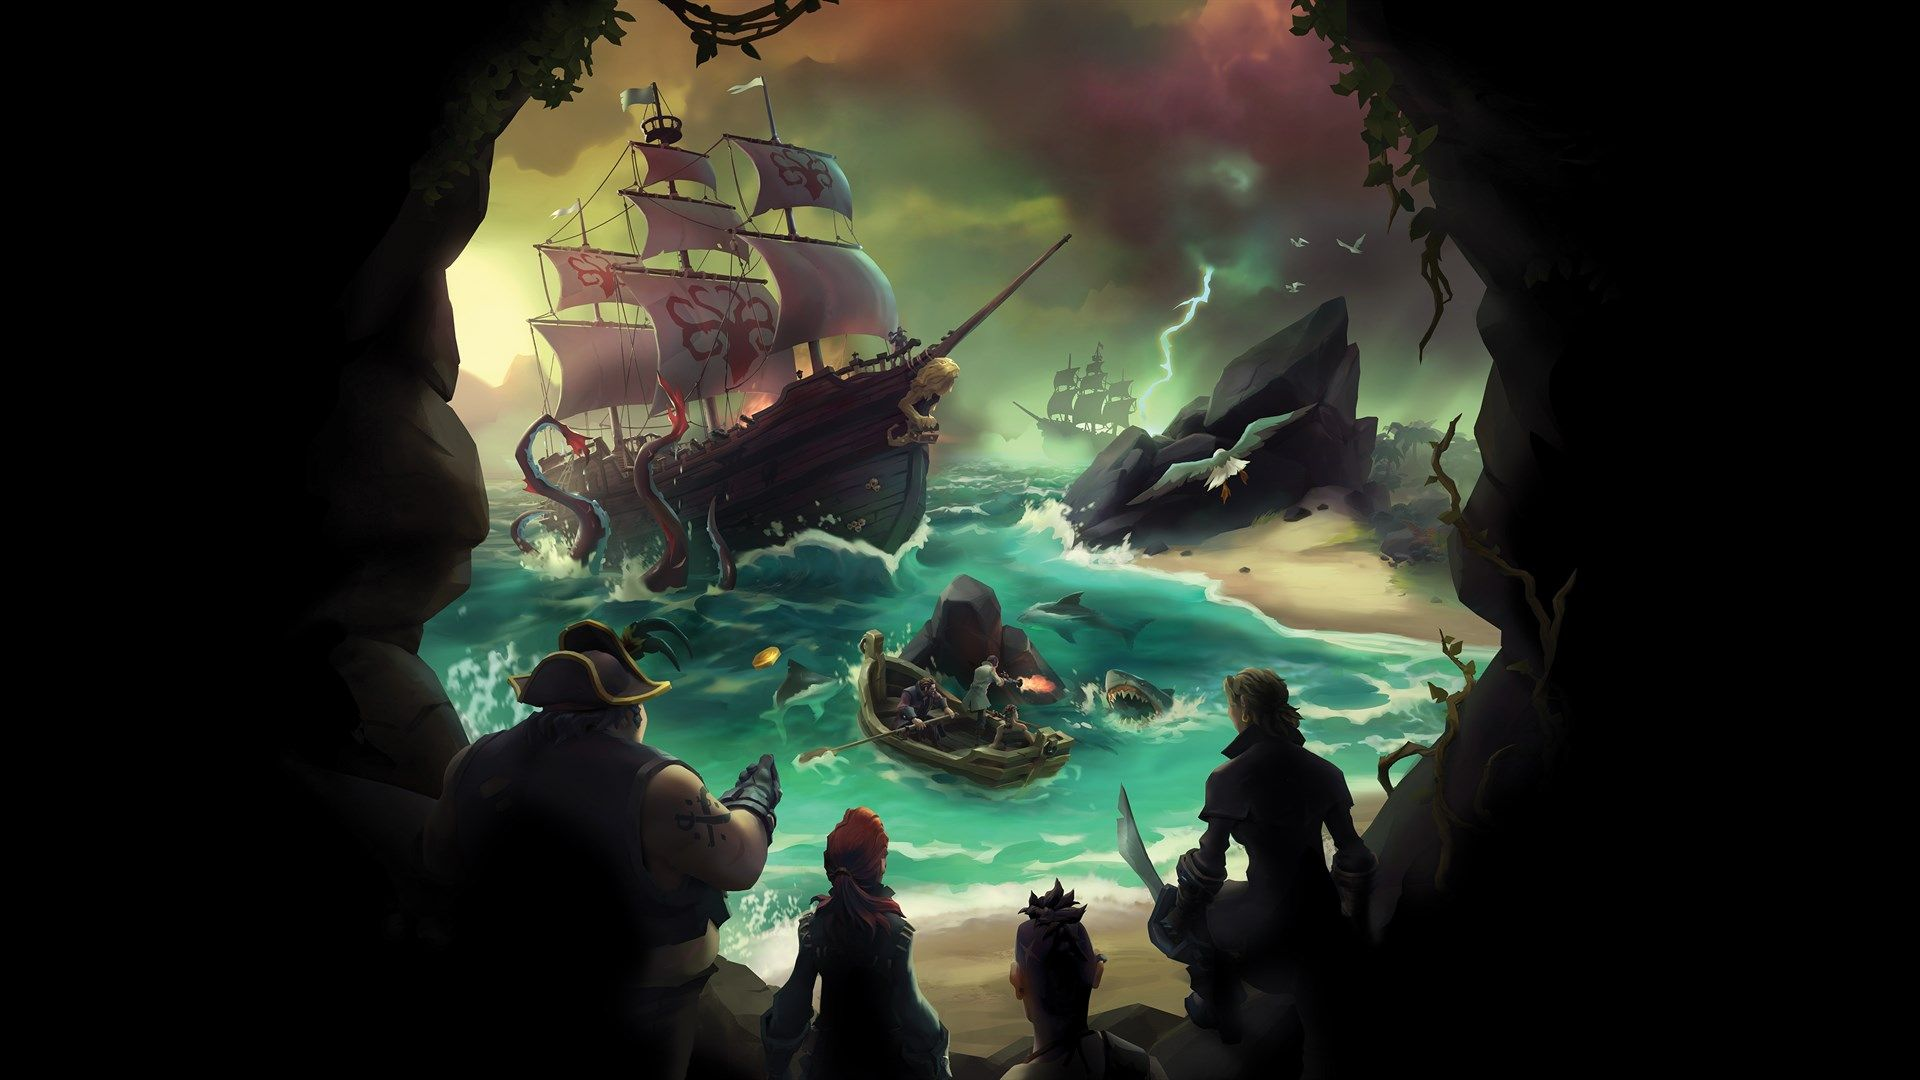 Sea Of Thieves Plans Pets, Emotes And Ship Cosmetics In